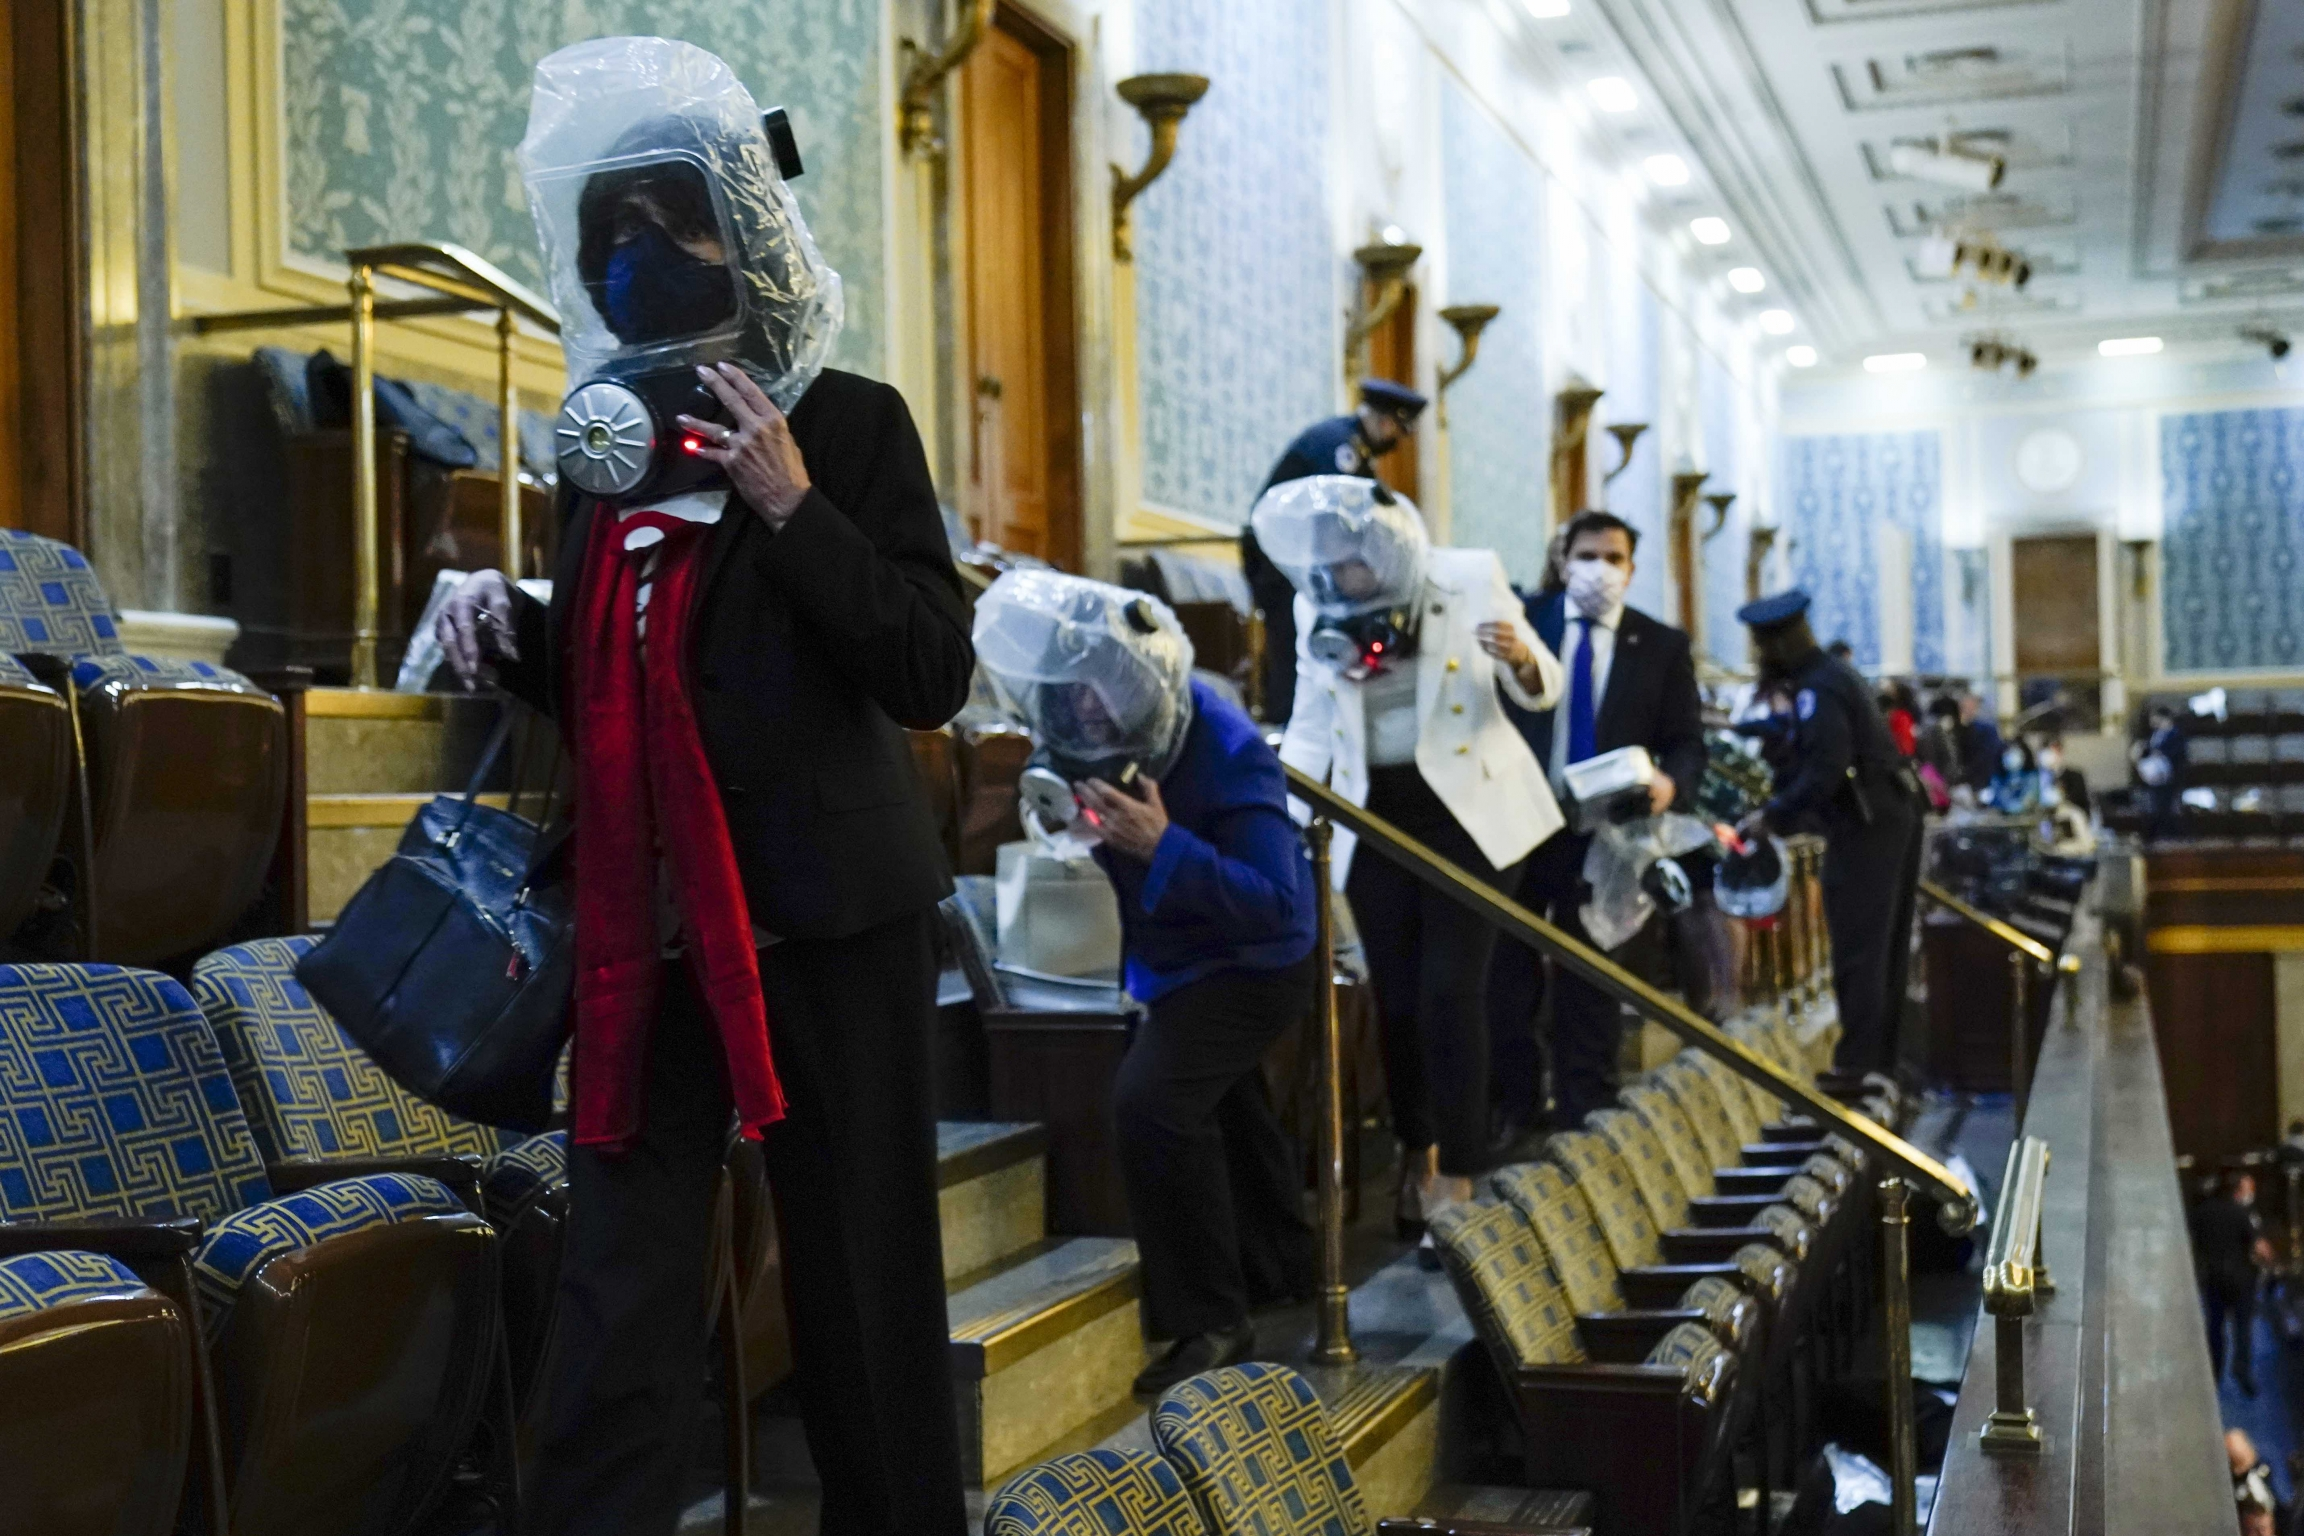 People wearing plastic protection around their heads shelter in the House gallery as a mob of Trump supporters try to break into the House chamber at the US Capitol on Wednesday, Jan. 6, 2021, in Washington, DC.